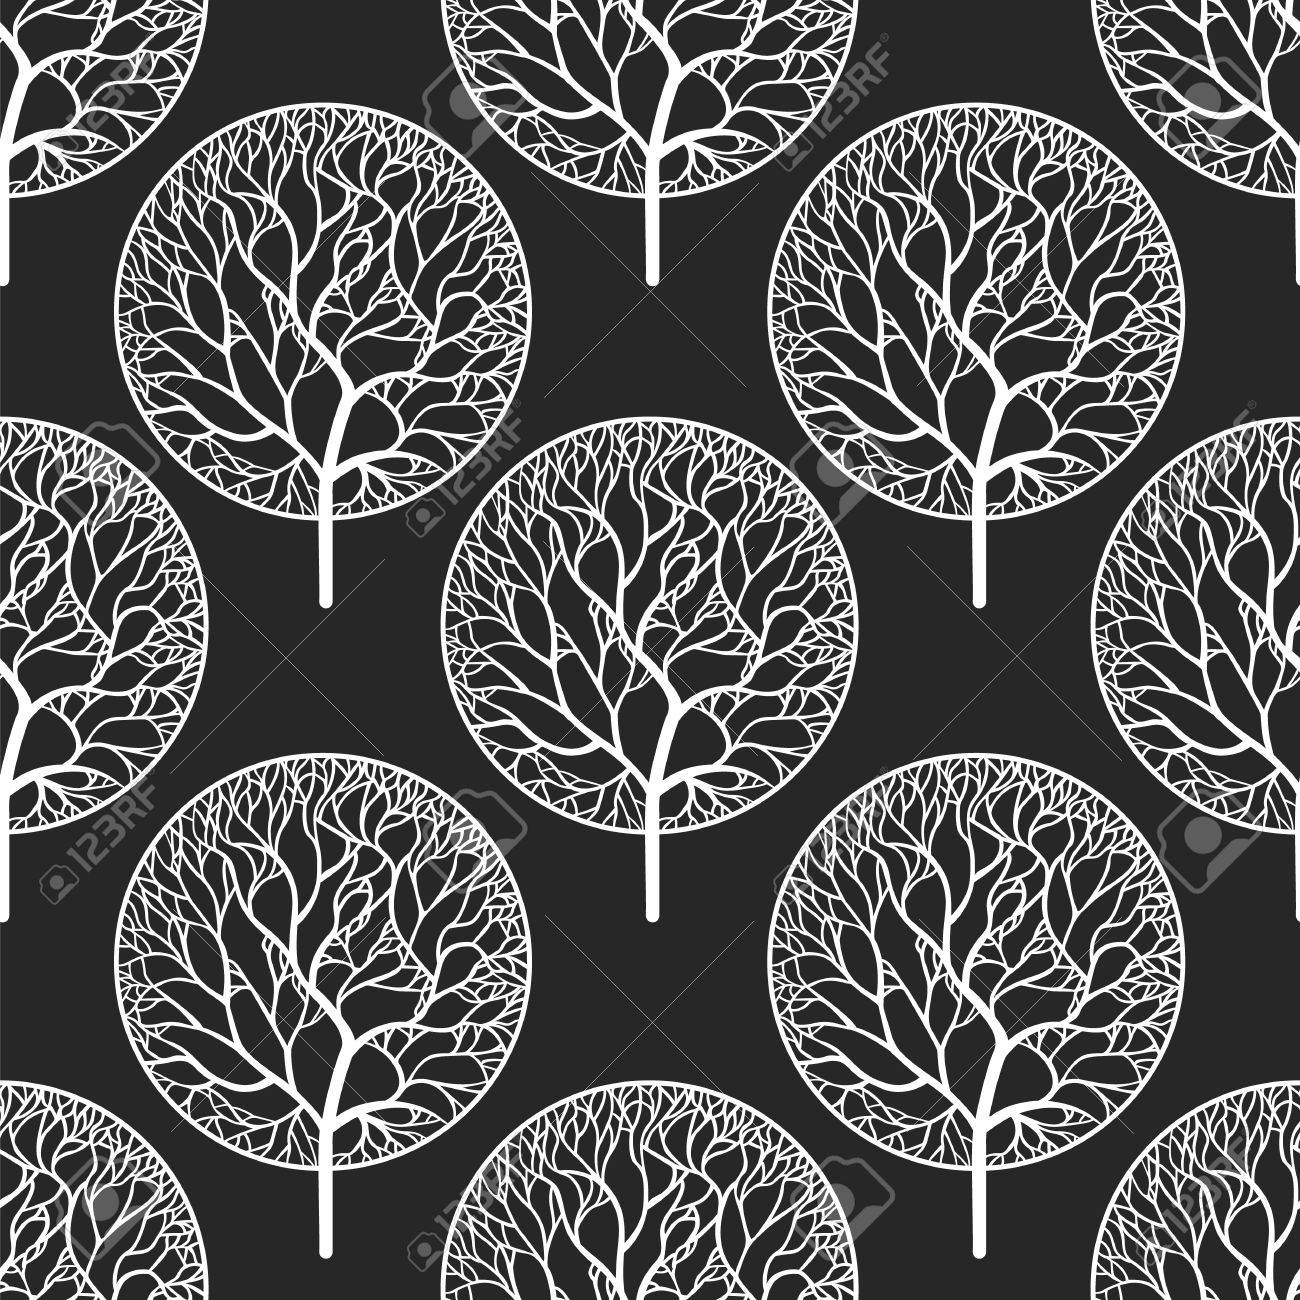 Seamless abstract vector pattern with white trees - 52138792